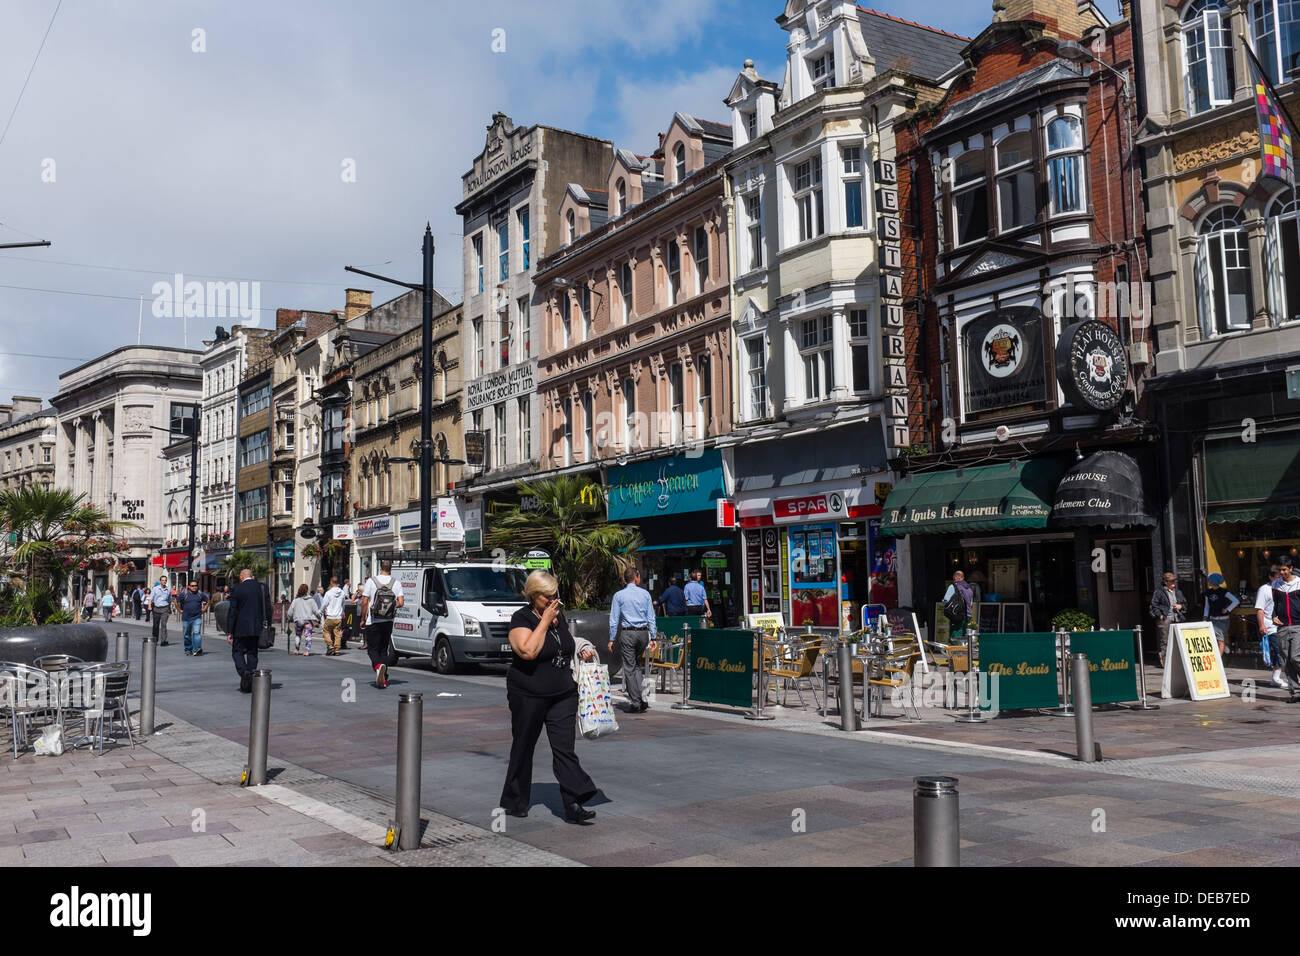 Pedestrianised St Mary's Street, Cardiff city centre, August 2013, Wales UK - Stock Image